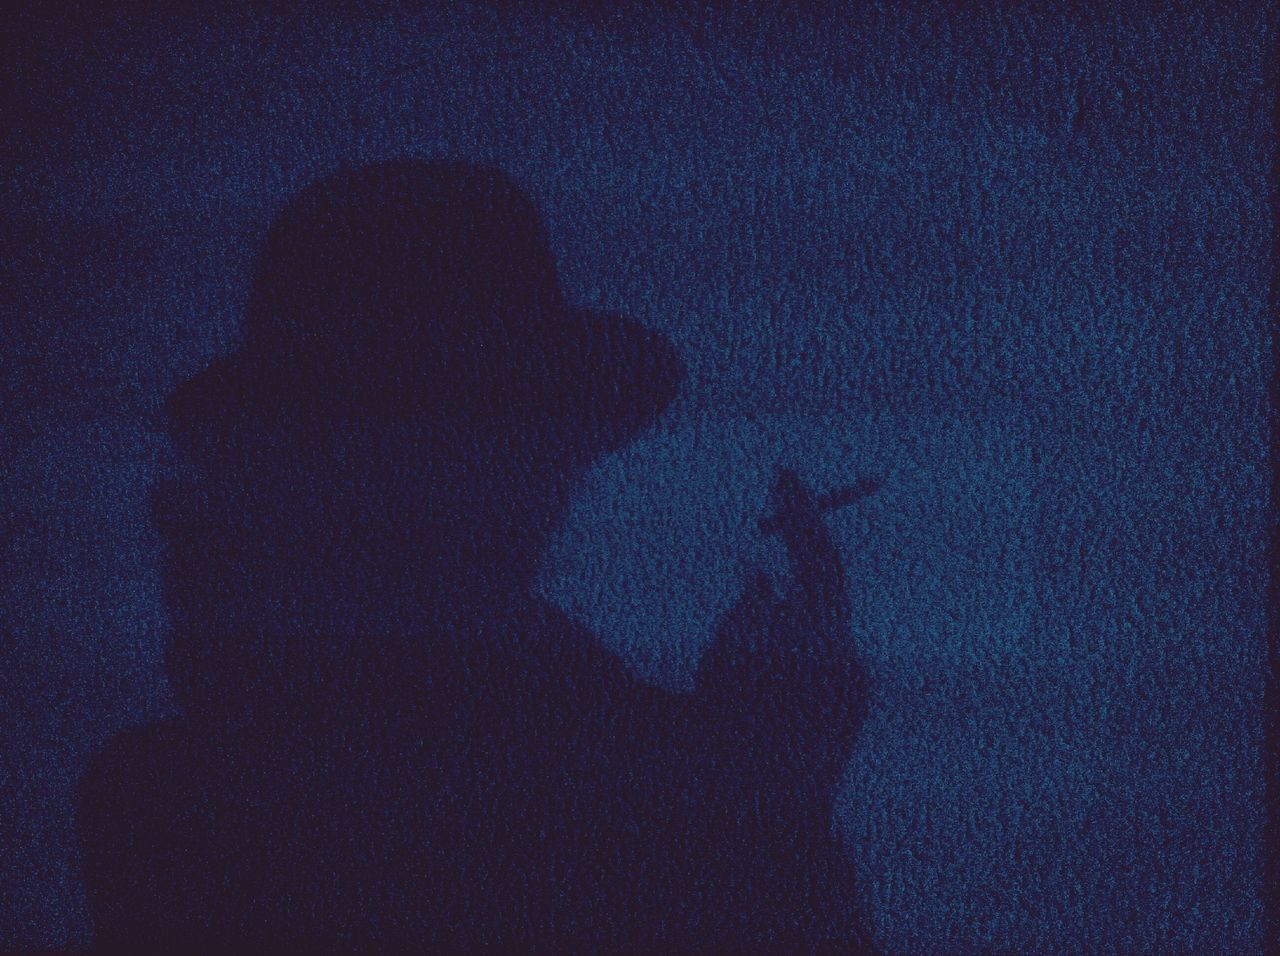 Shadow of a man with cigarette on the wall